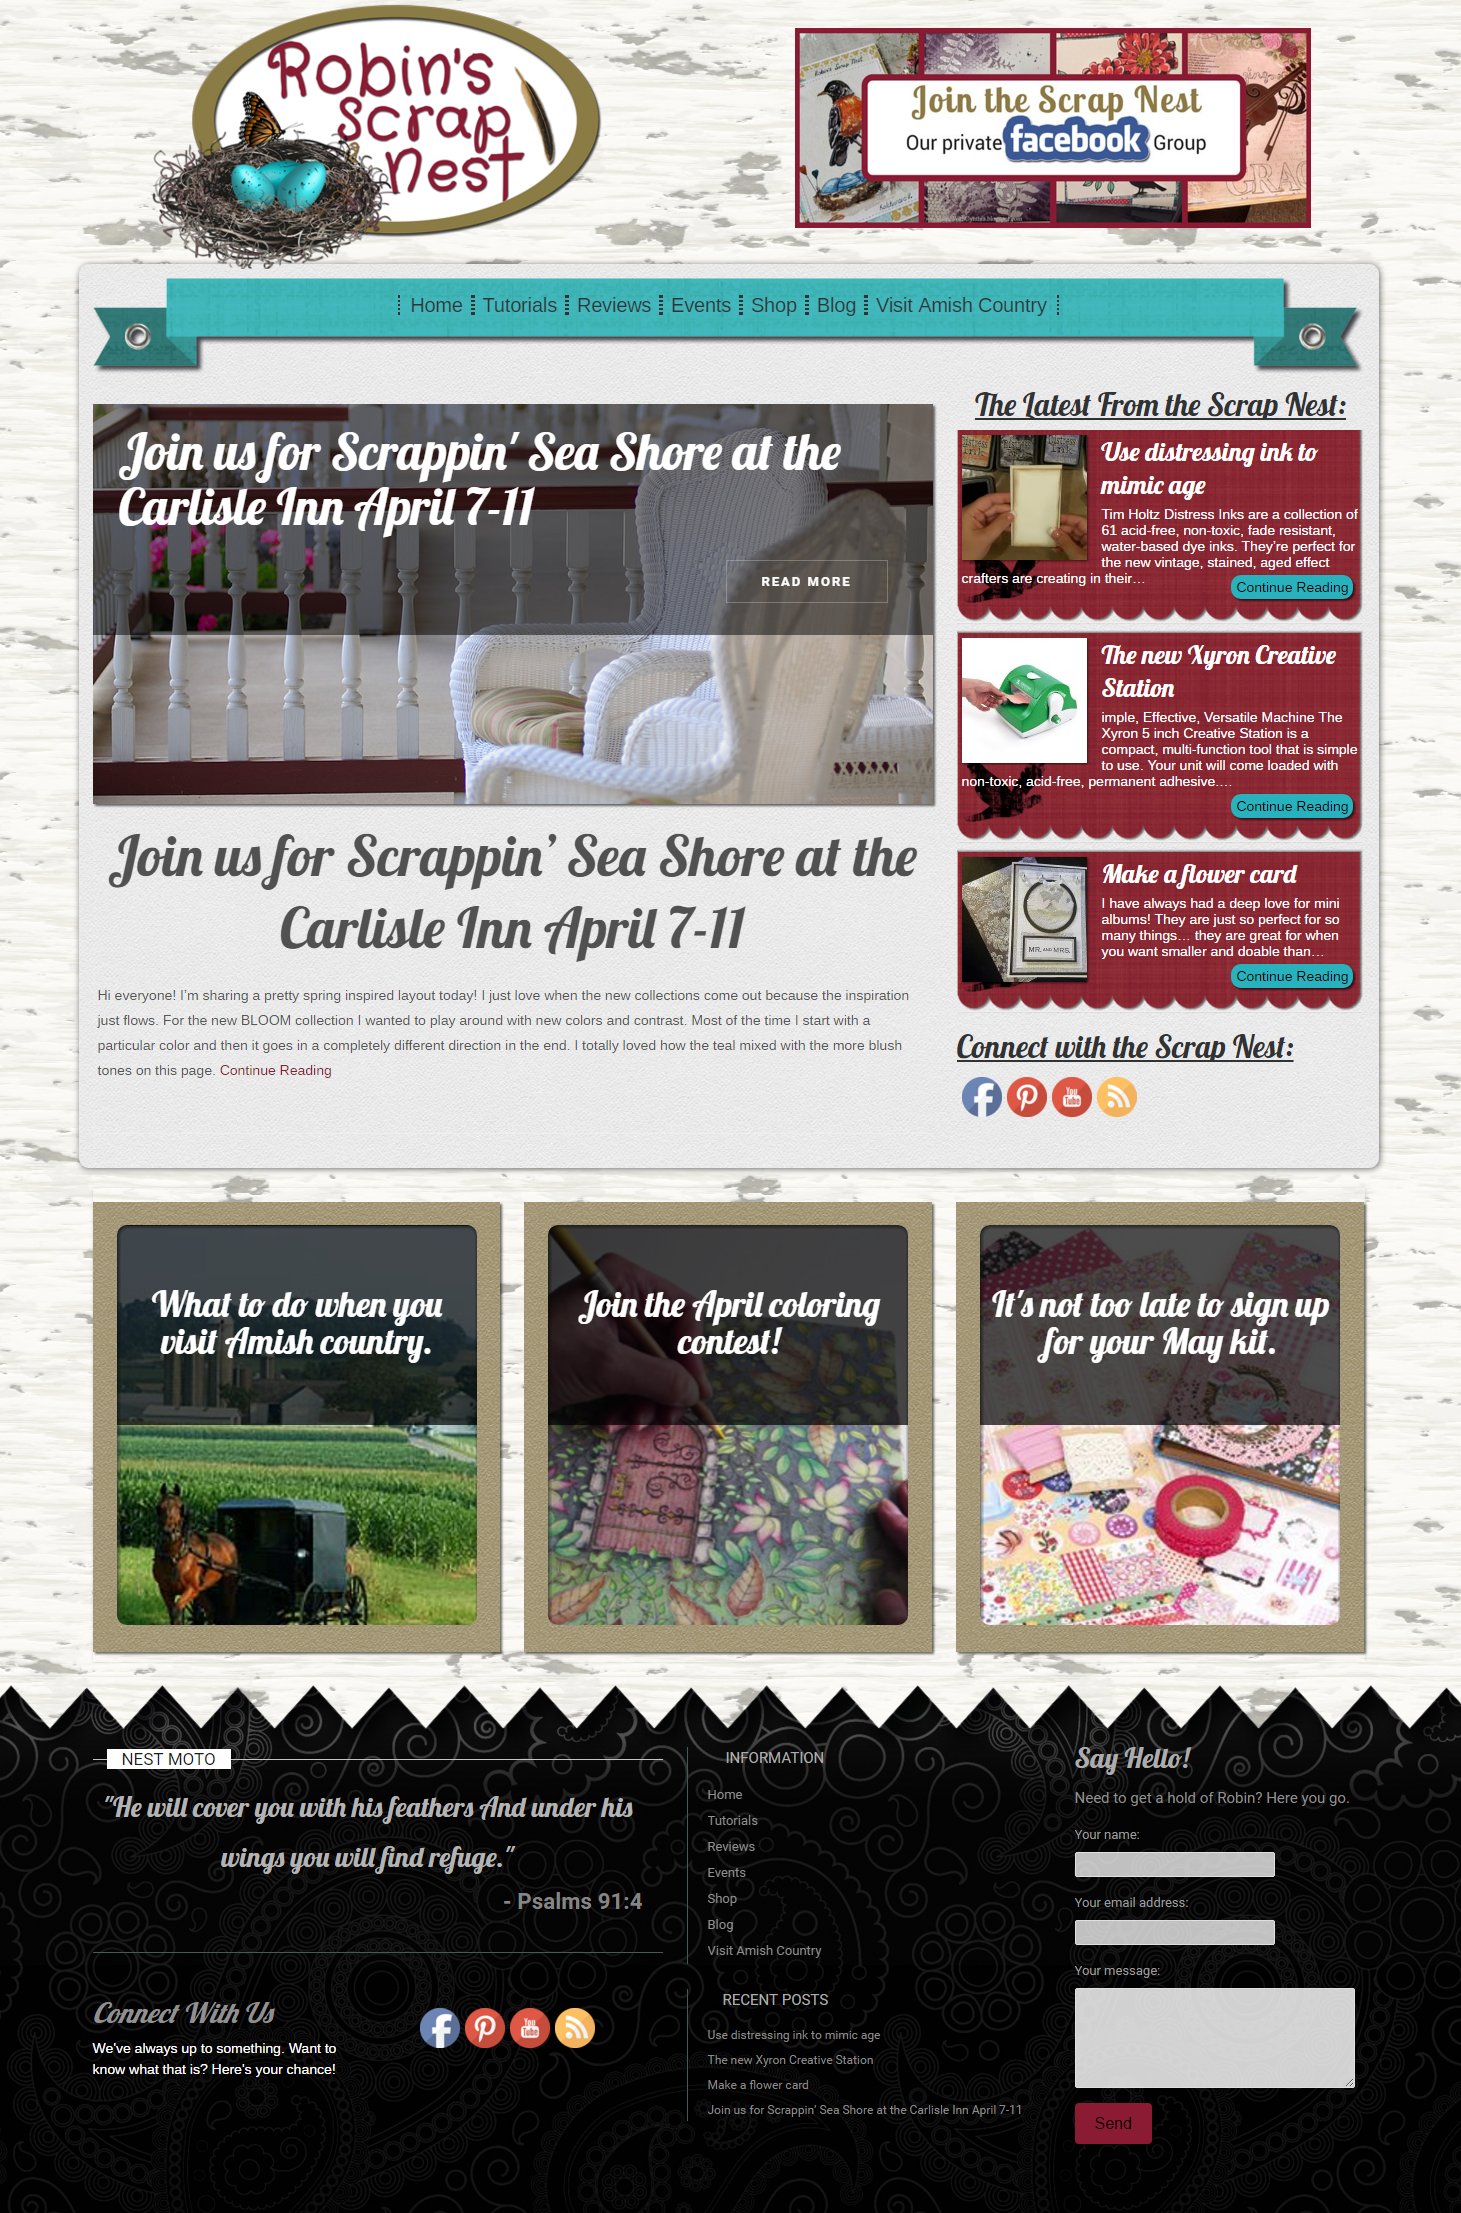 This client runs a scrapbooking company. They wanted a modern attractive site that constantly changes. We created this totally dynamic page that pulls content and pictures from their own blog posts to give them an easy to update page that always looks great.